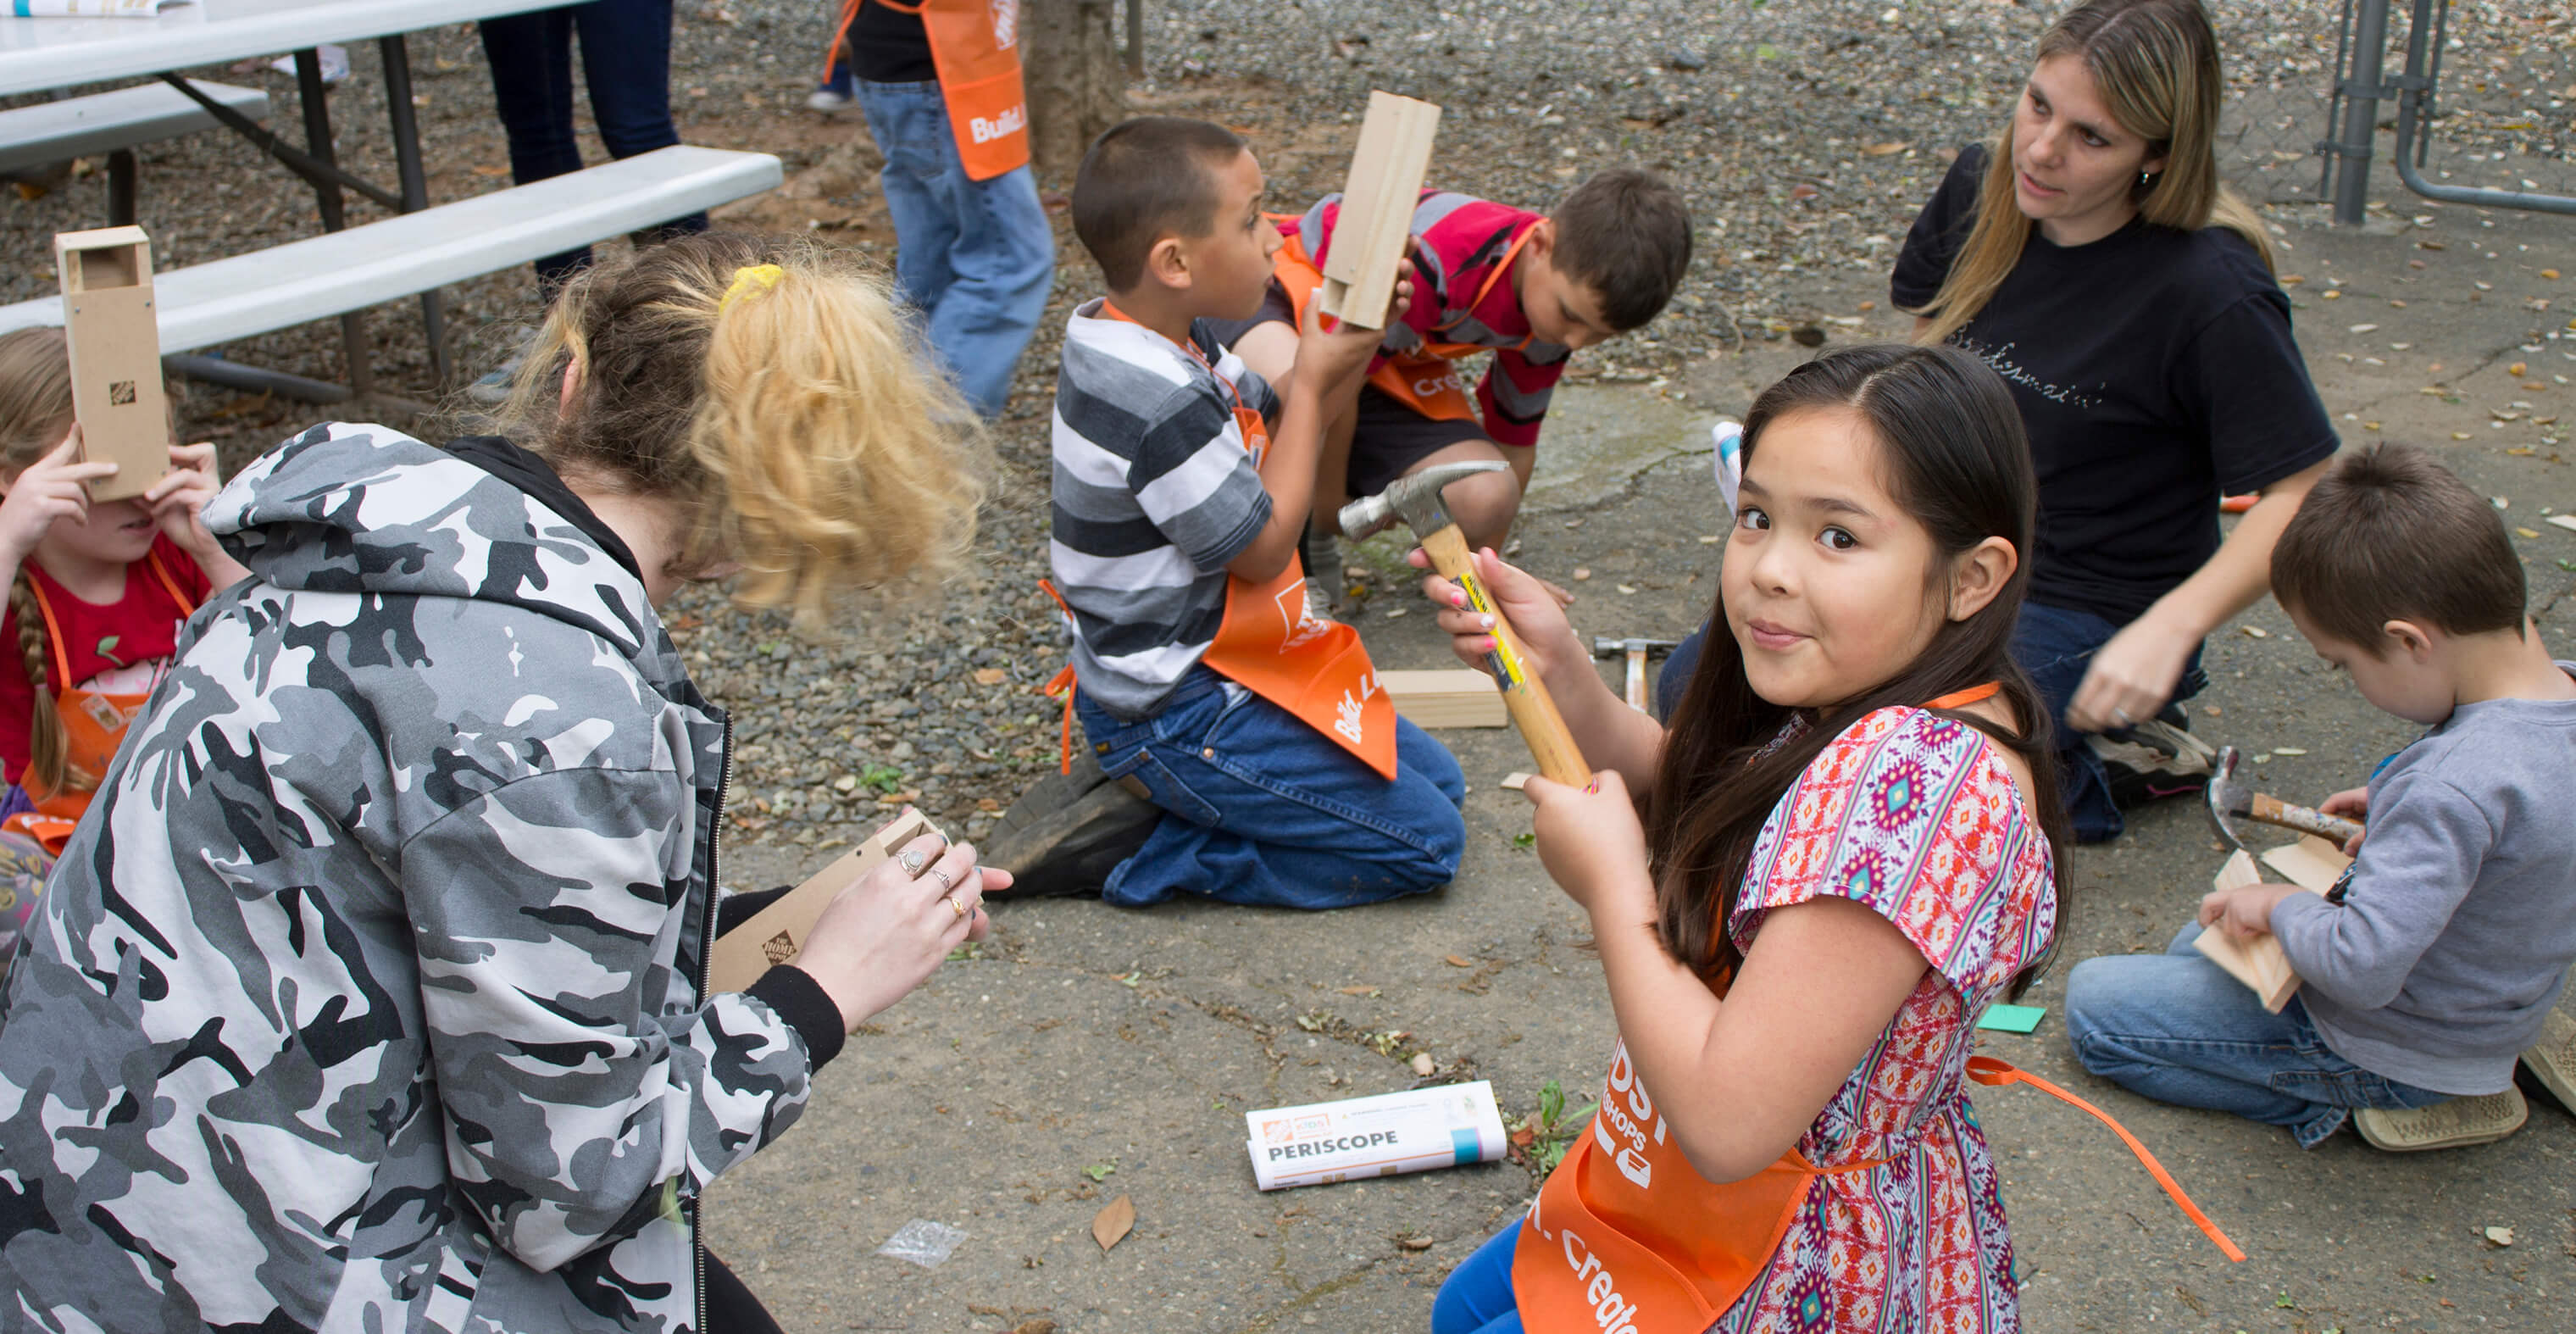 Lincoln Montessori students participate in a periscope building project.